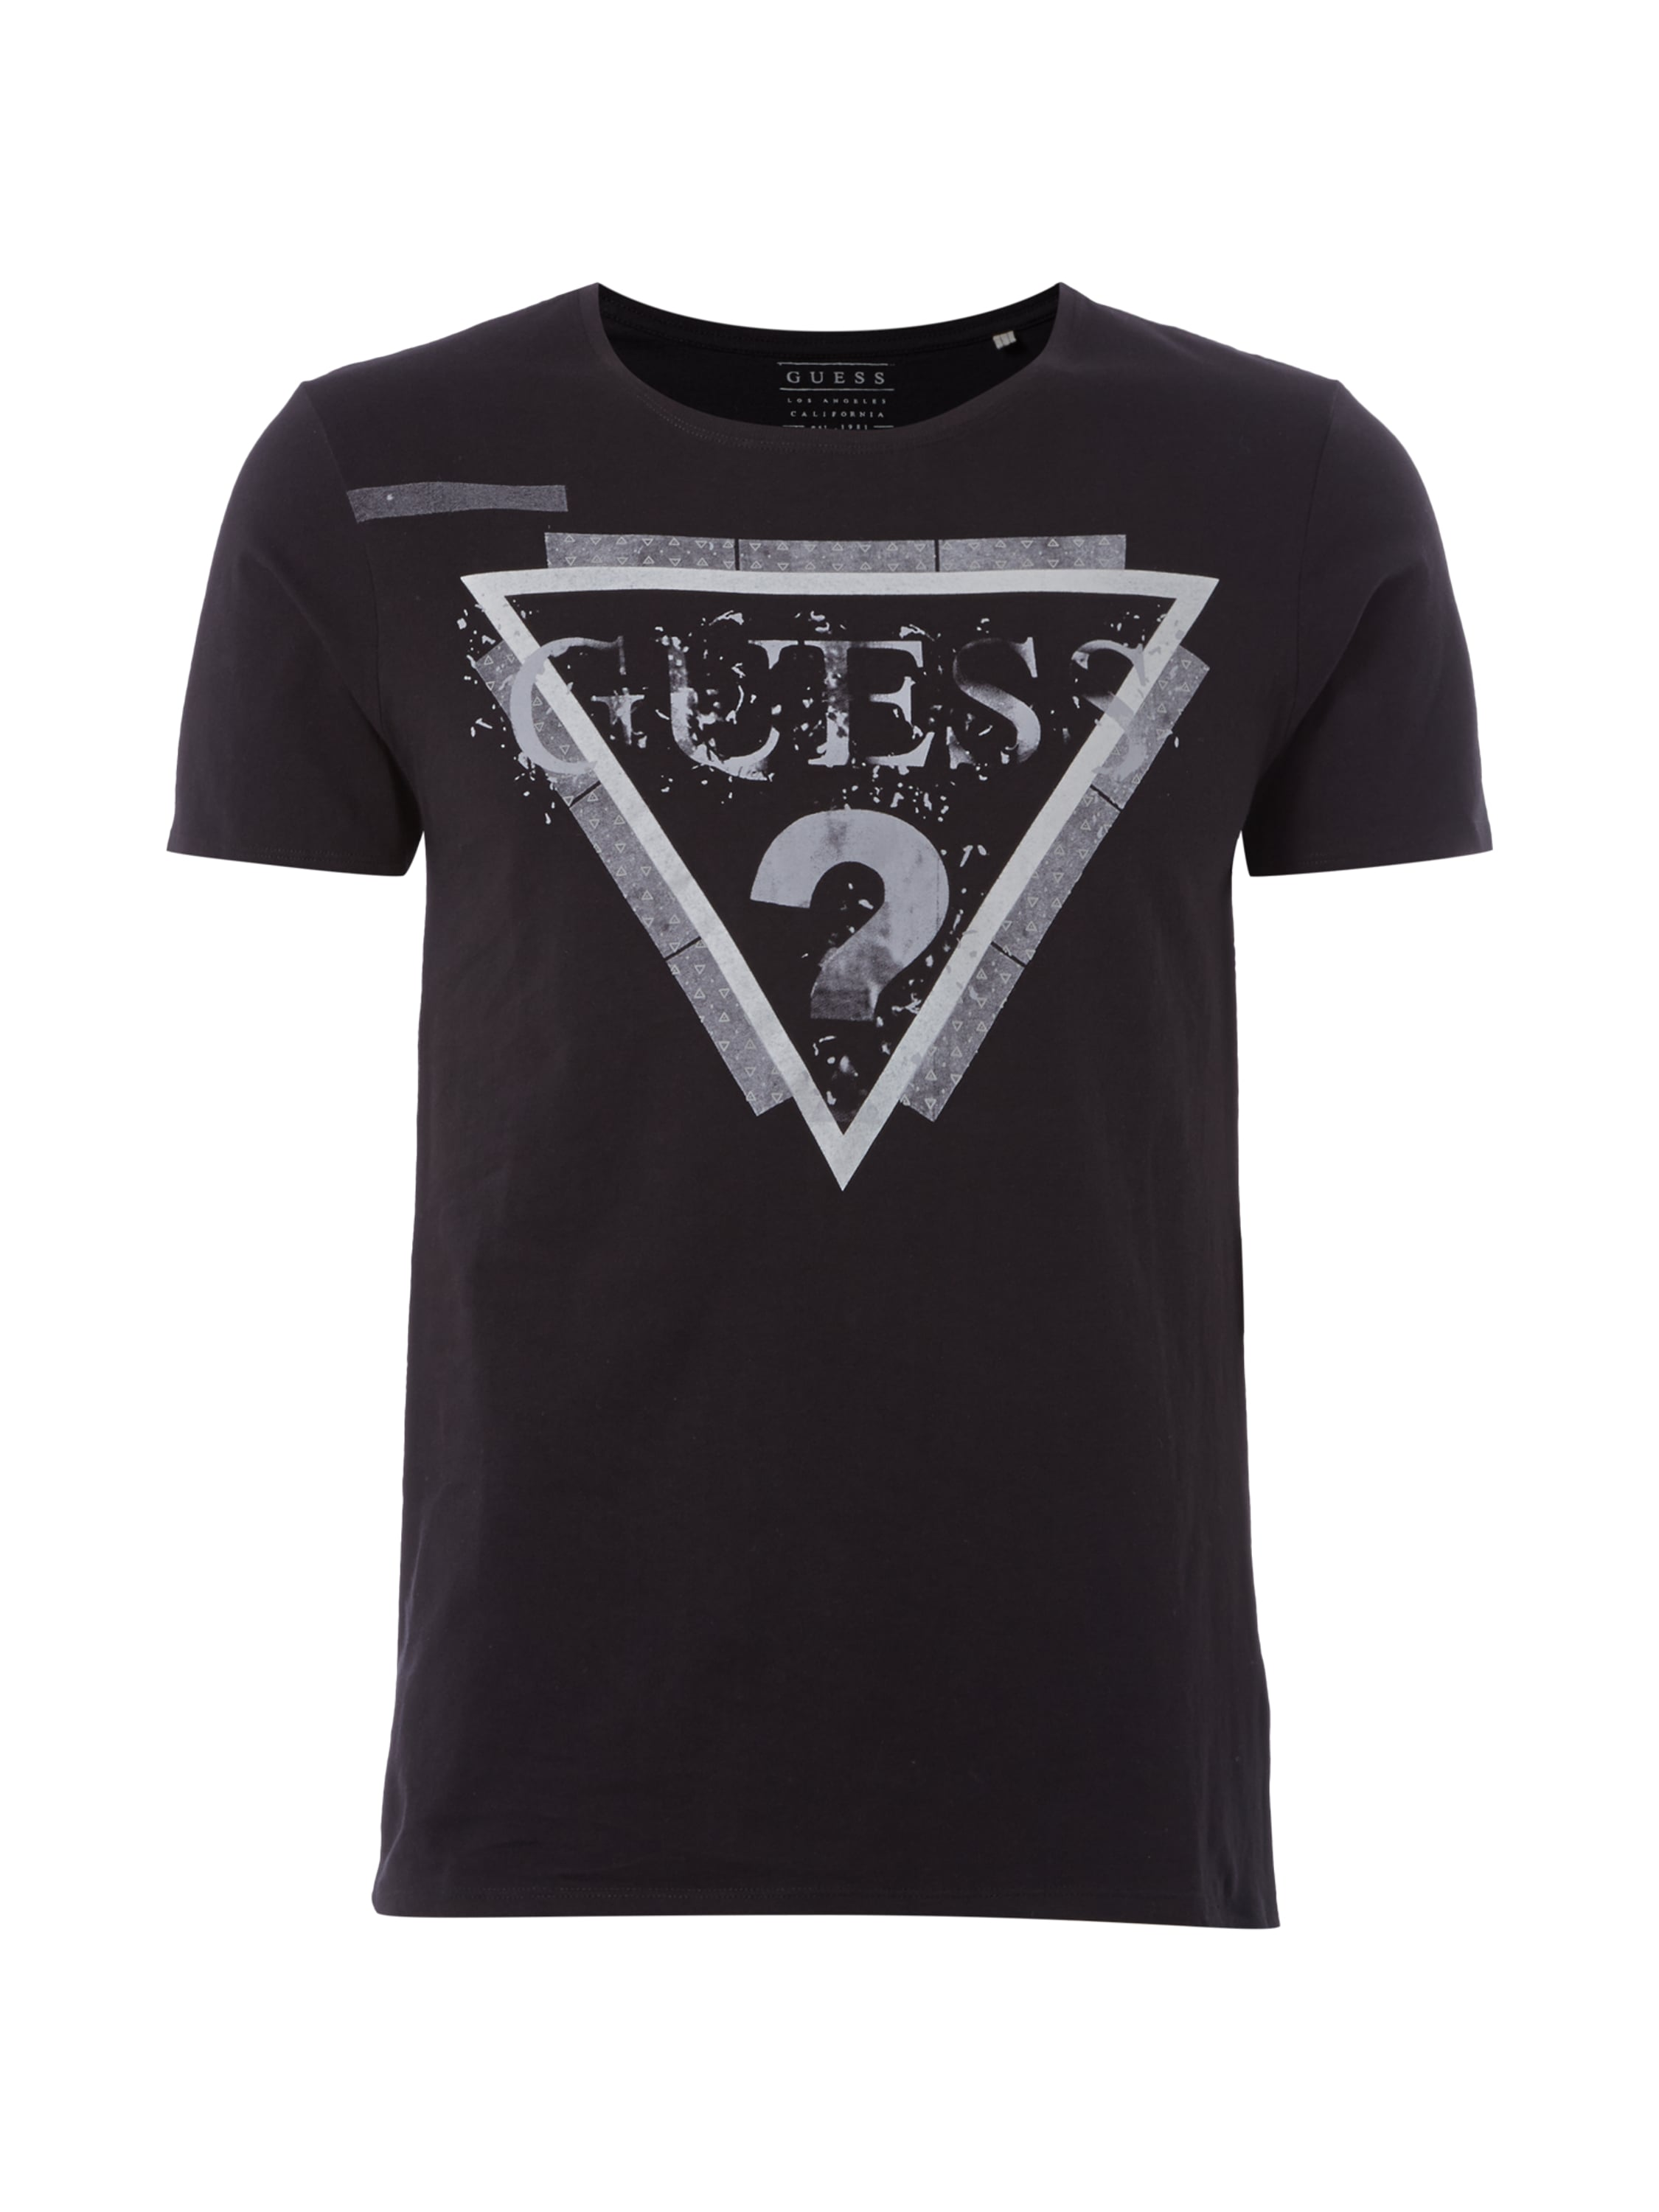 Guess t shirt mit logo print in grau schwarz online for Shirts with logo print